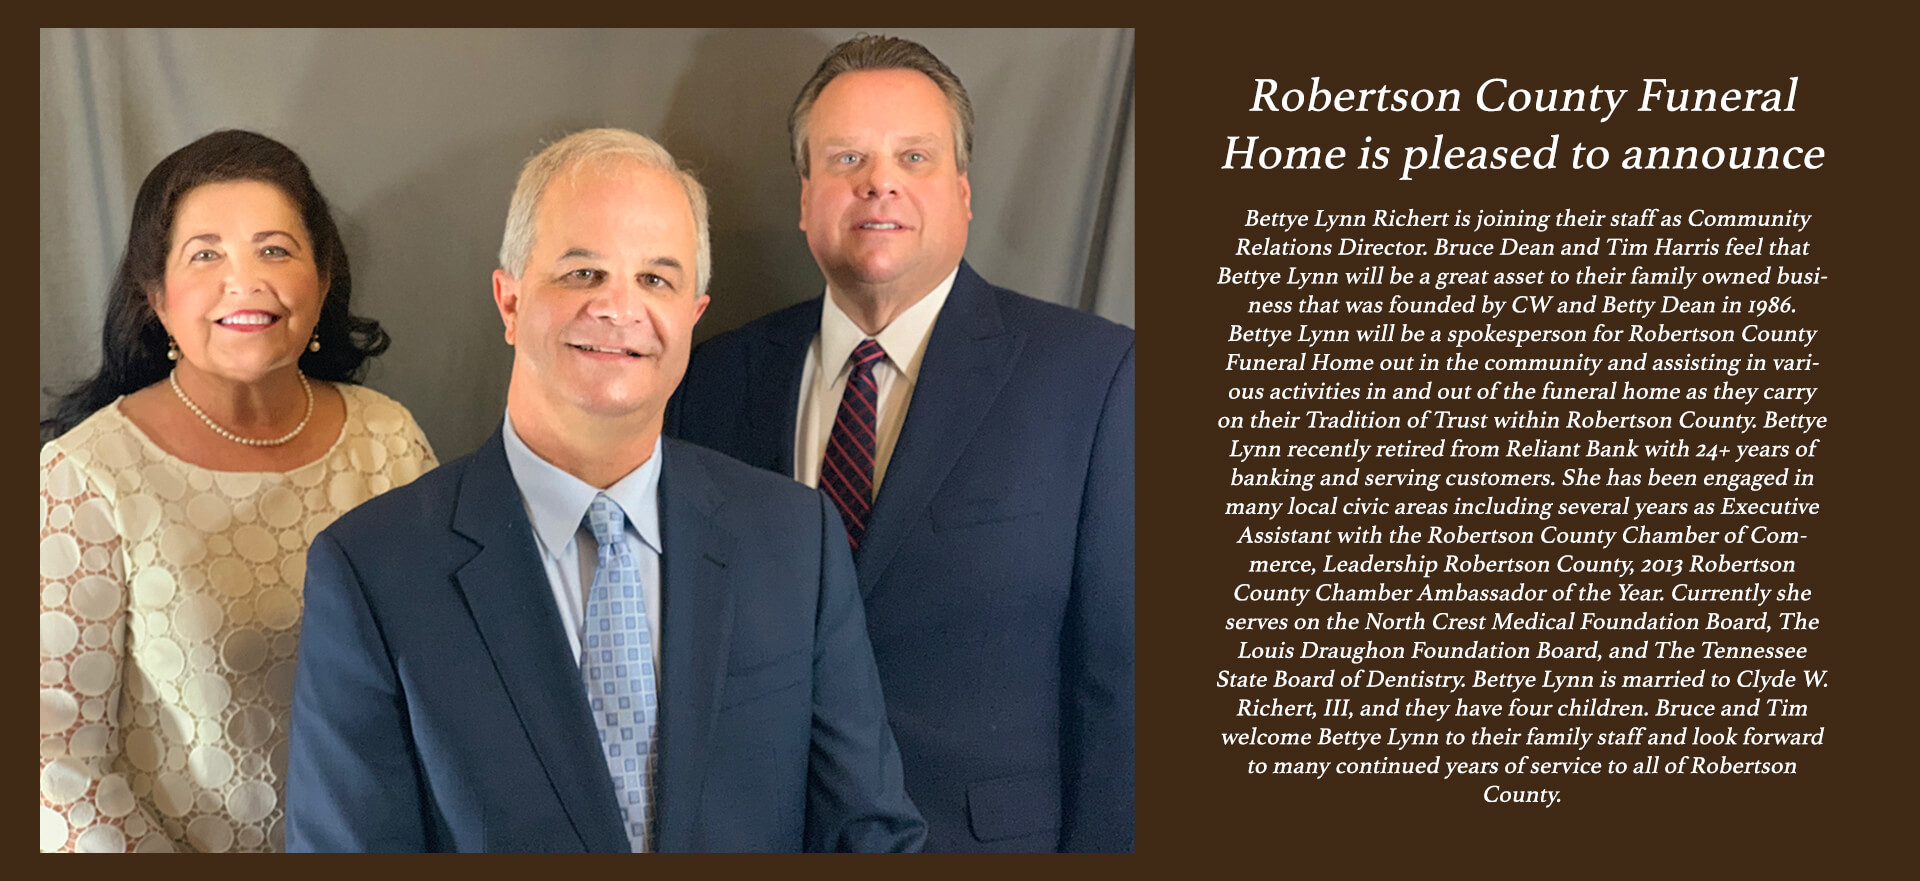 Robertson County Funeral Home | Springfield TN funeral home and